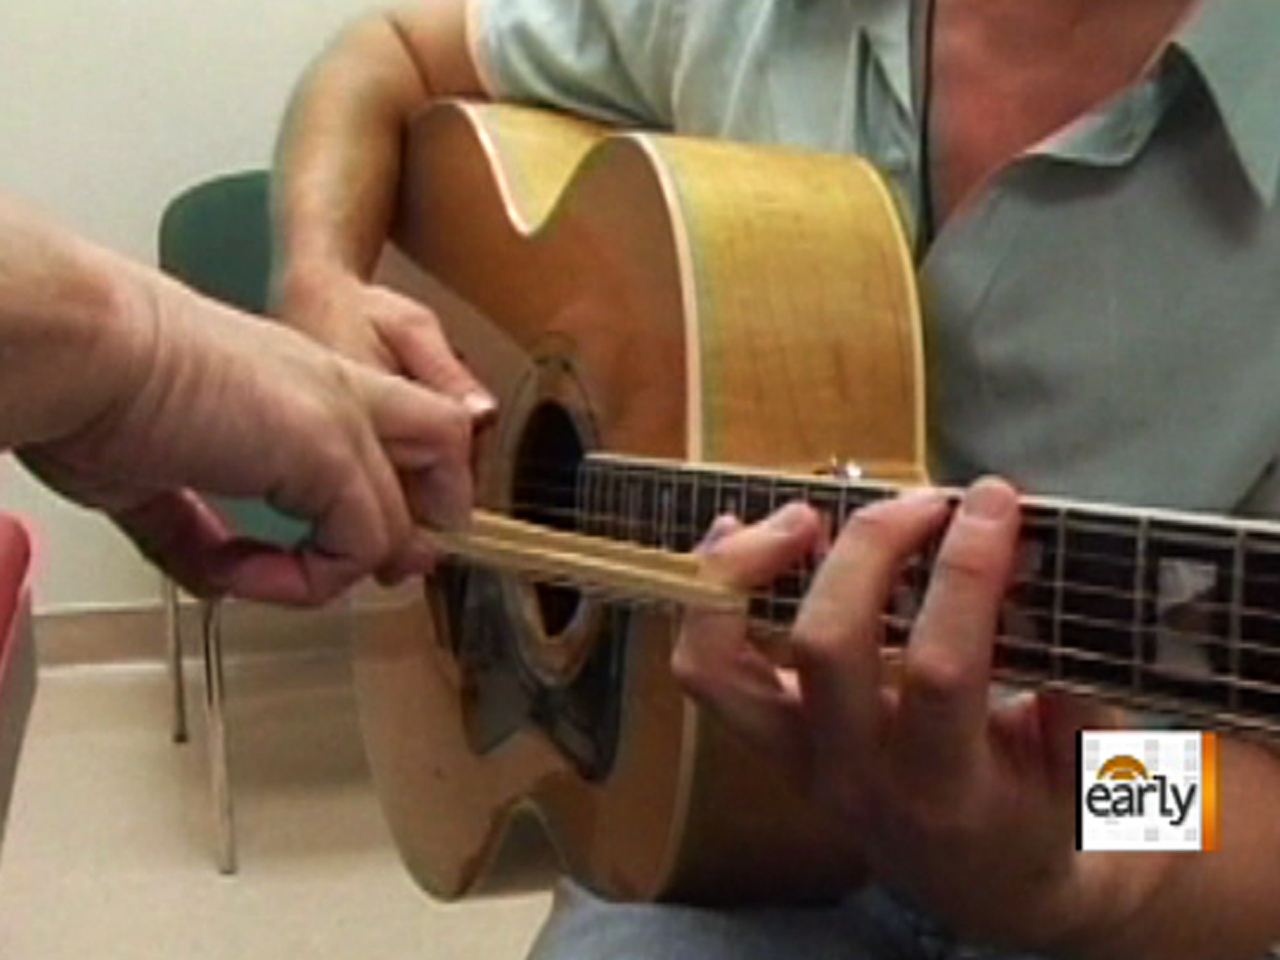 Guitarist Switches Playing Hand To Make Comeback Cbs News